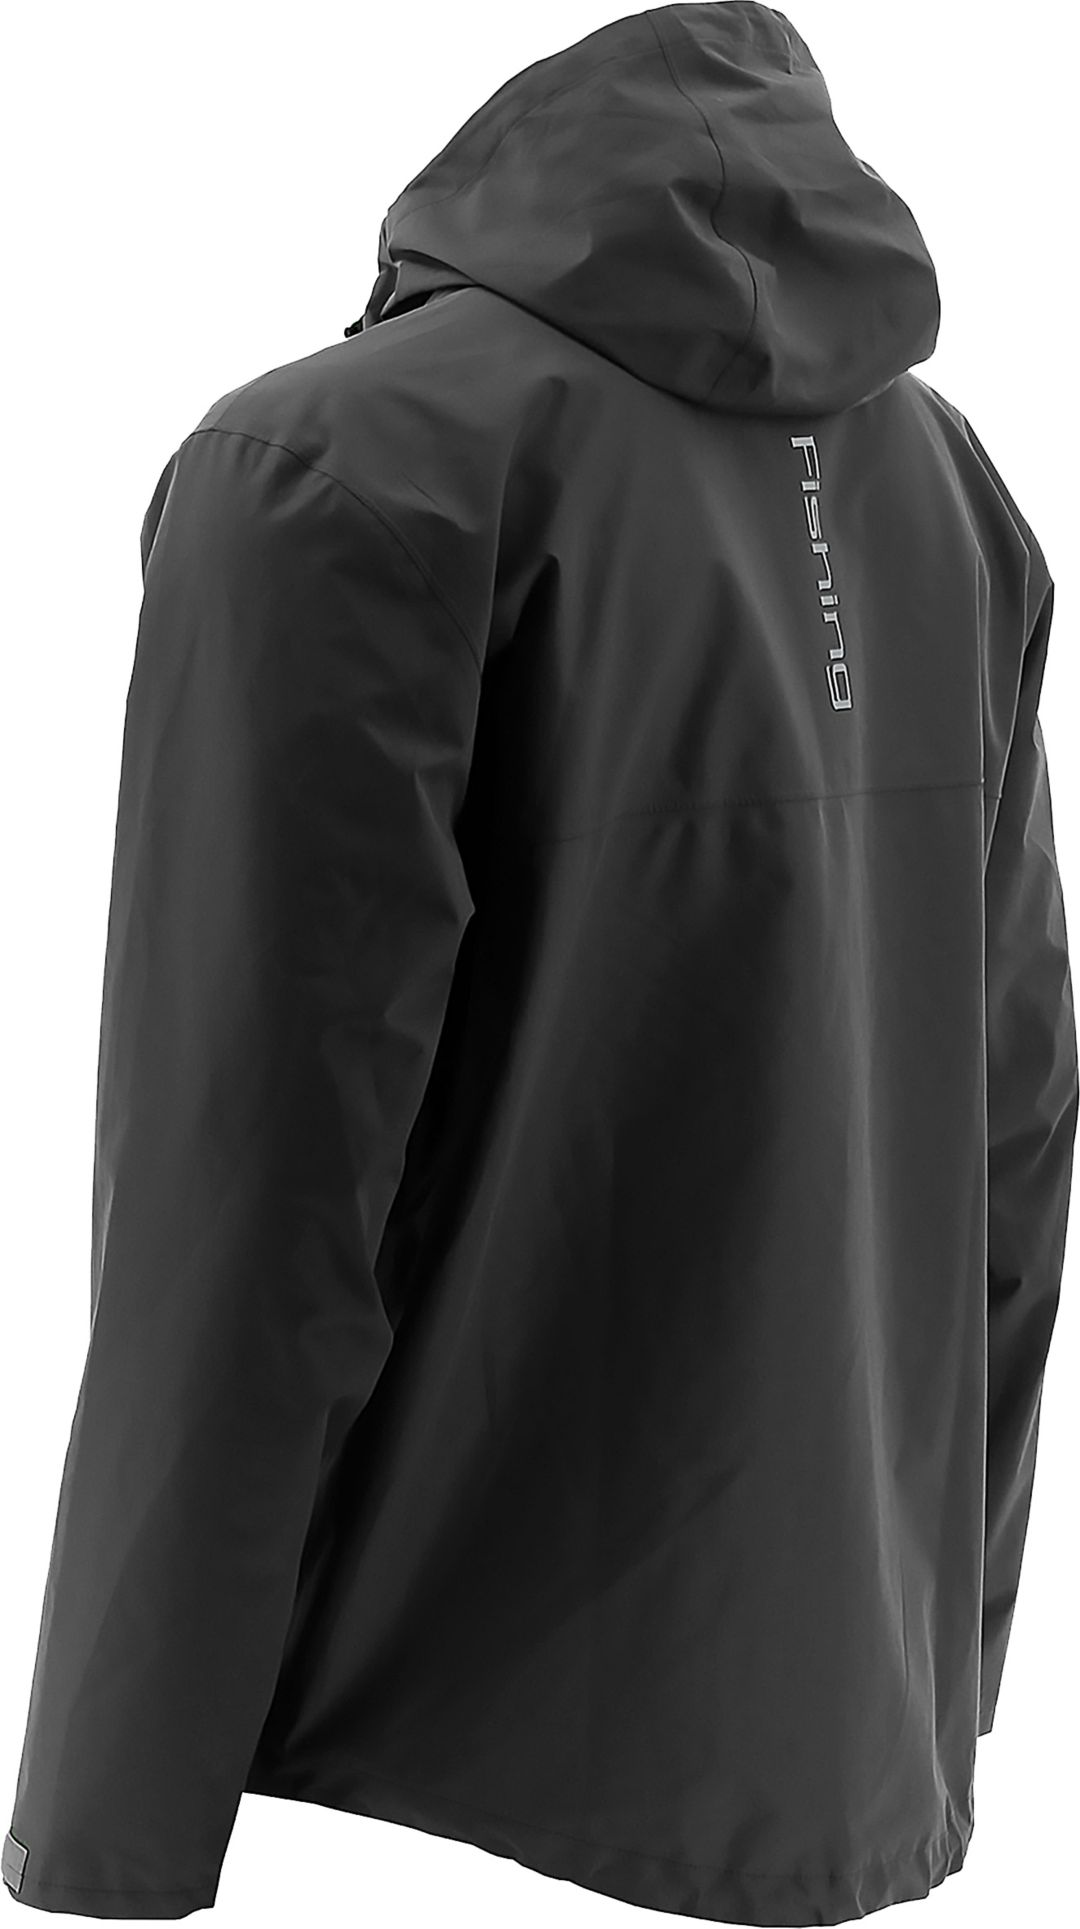 3efc91735 HUK Men's Packable Rain Jacket